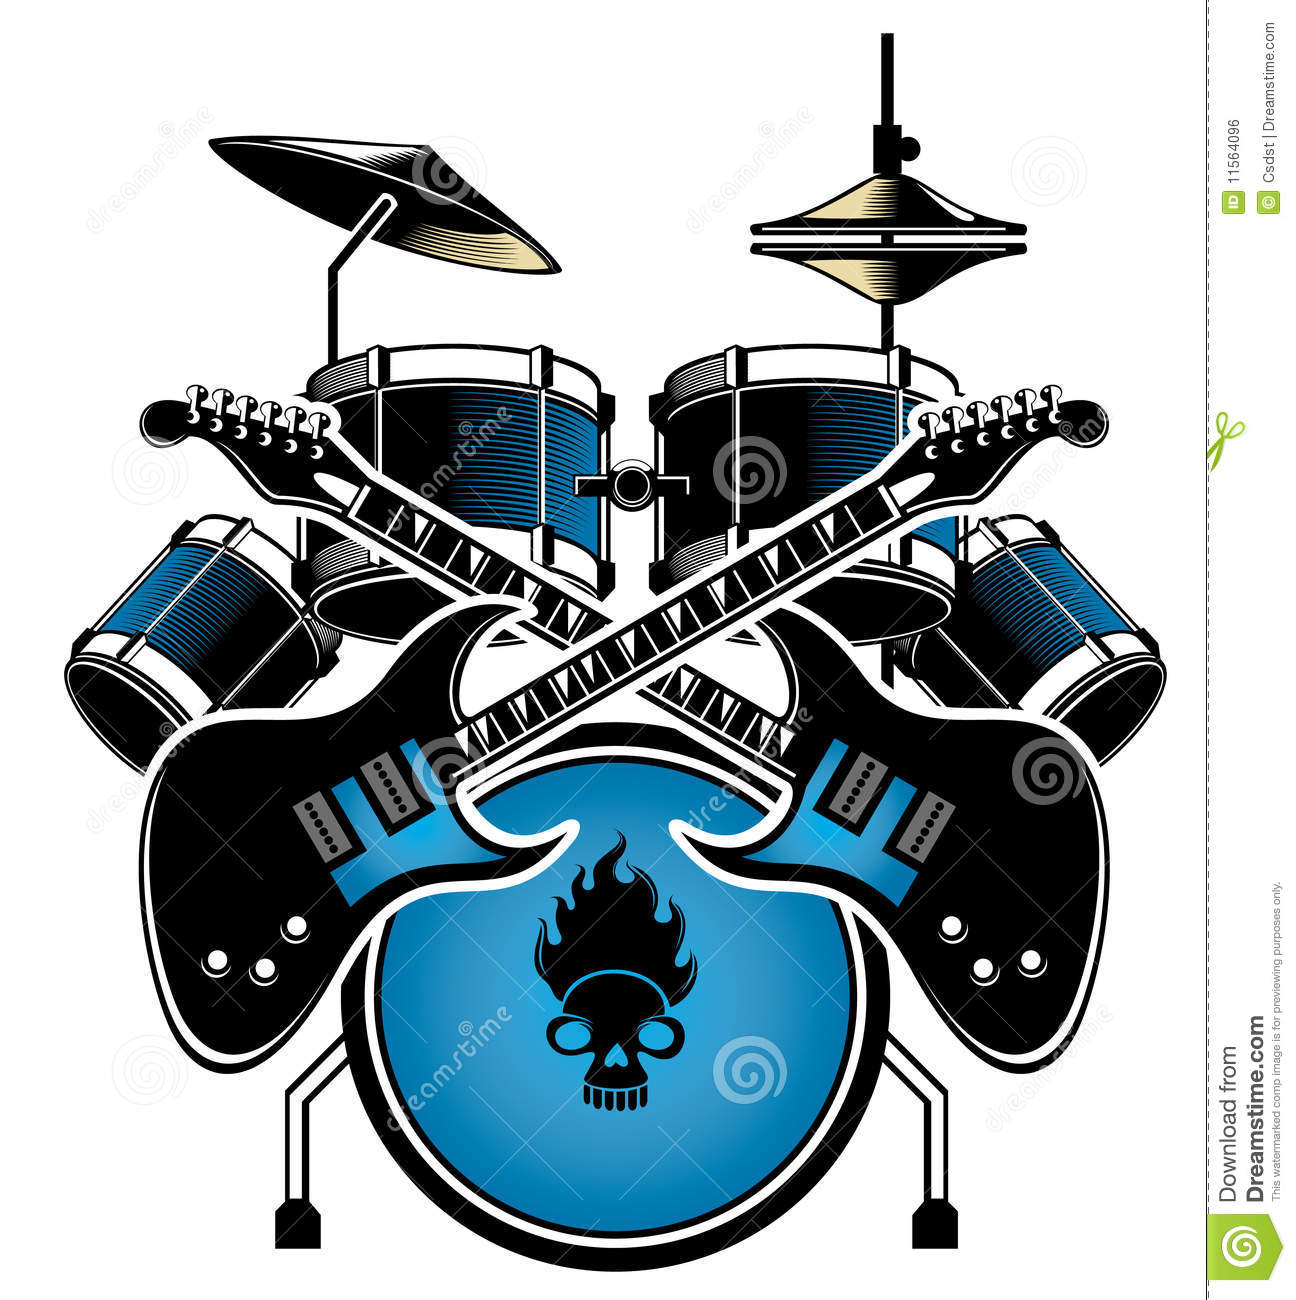 Drum Set Clipart Black And White Drum set and guitar royalty White Drum Set Silhouette